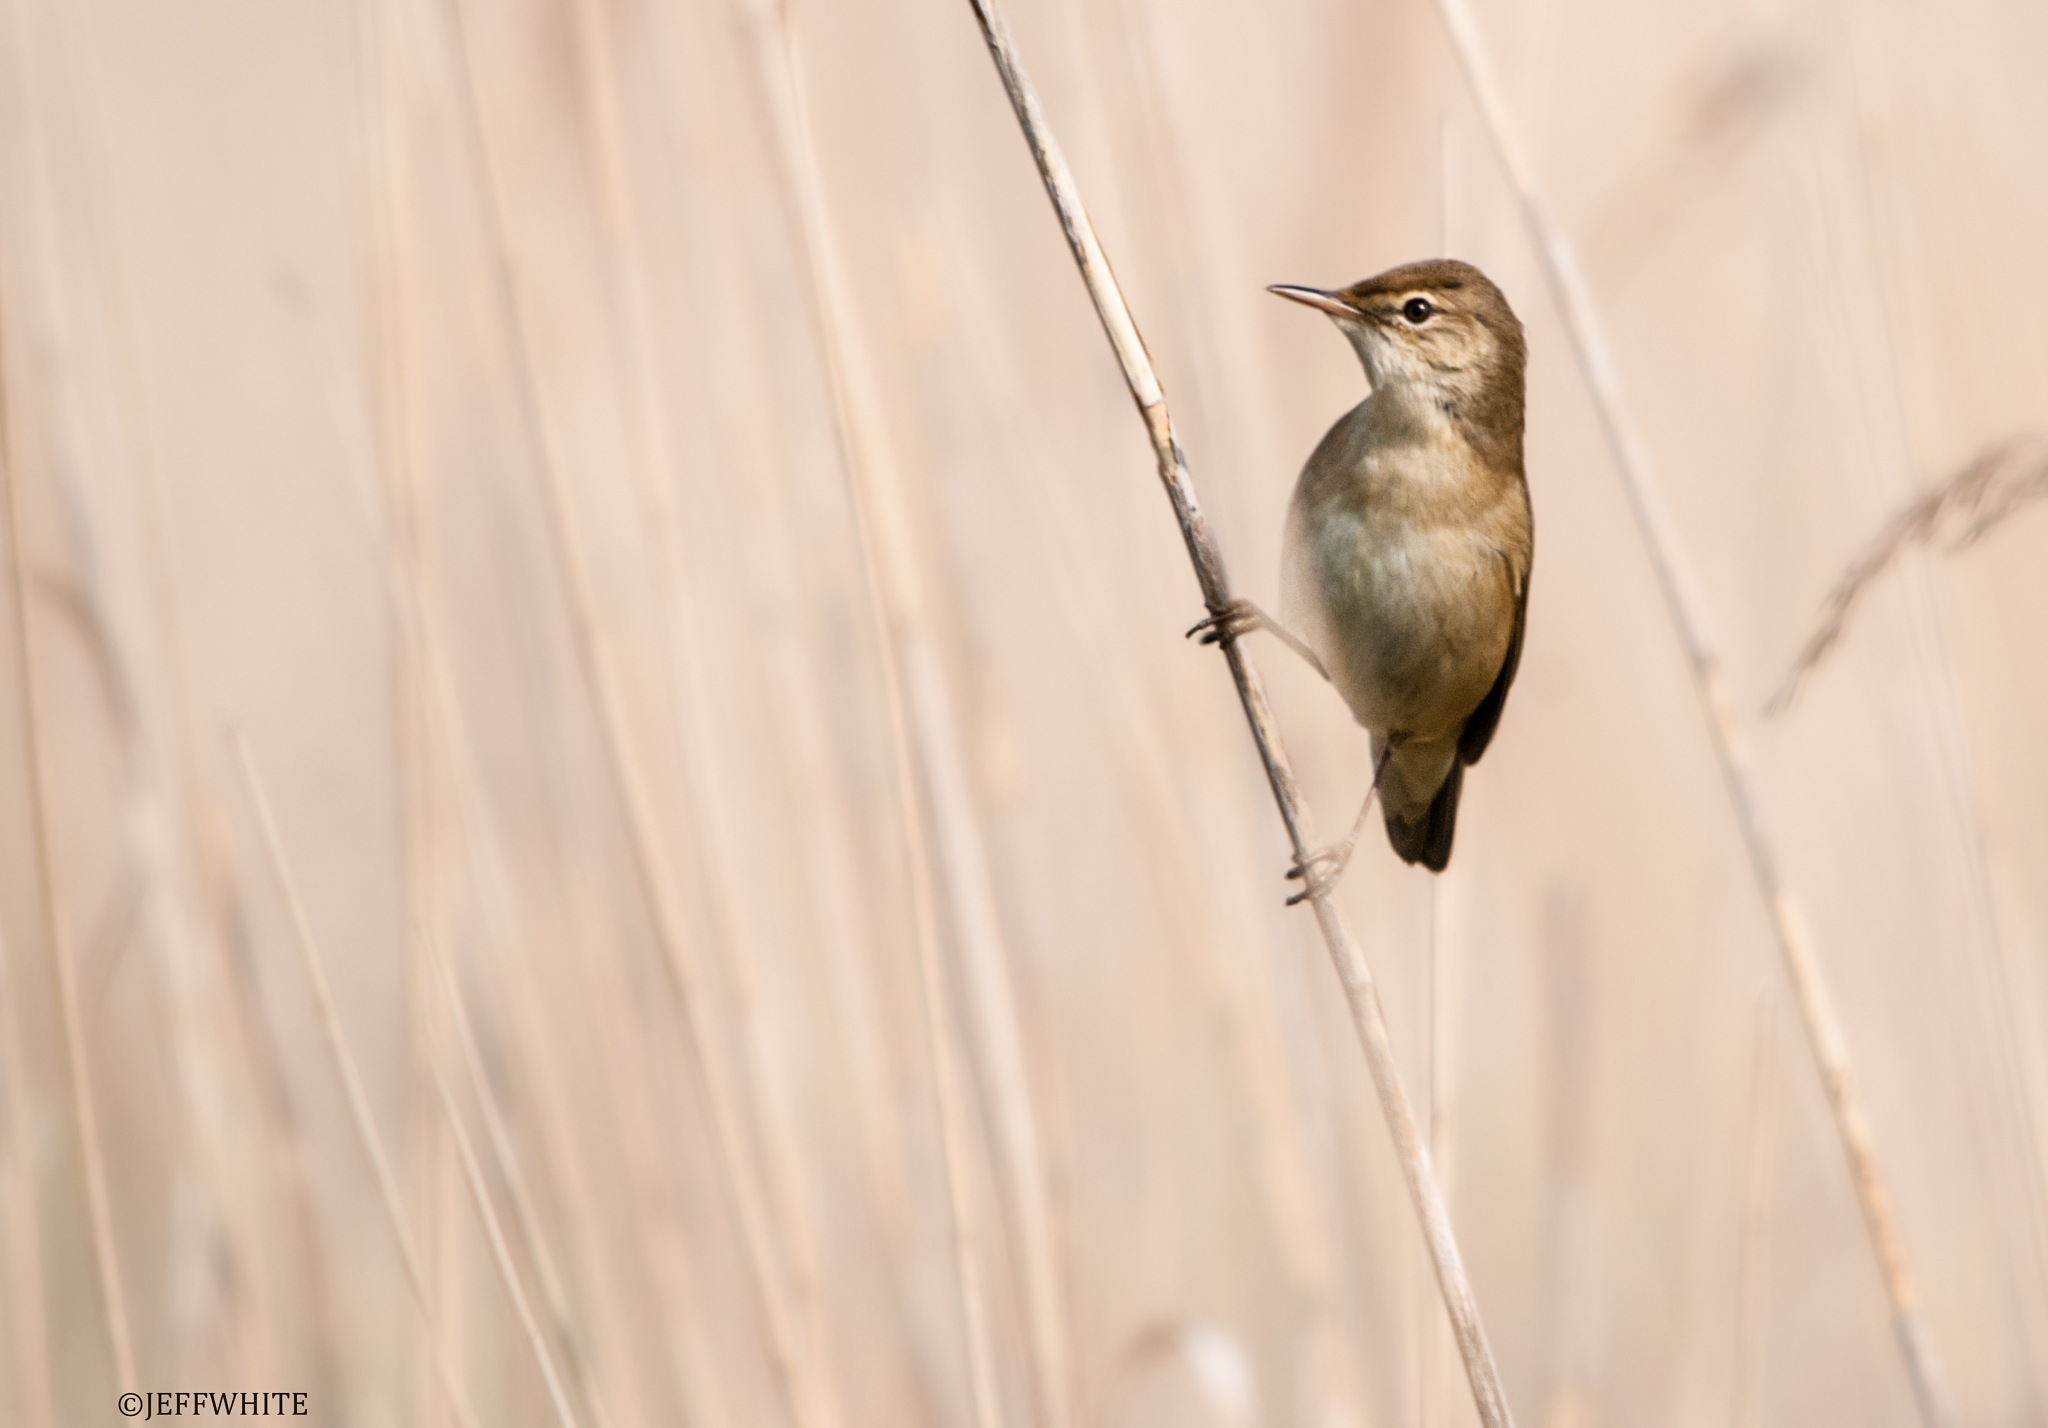 warbler in the reeds by jeffwhite11